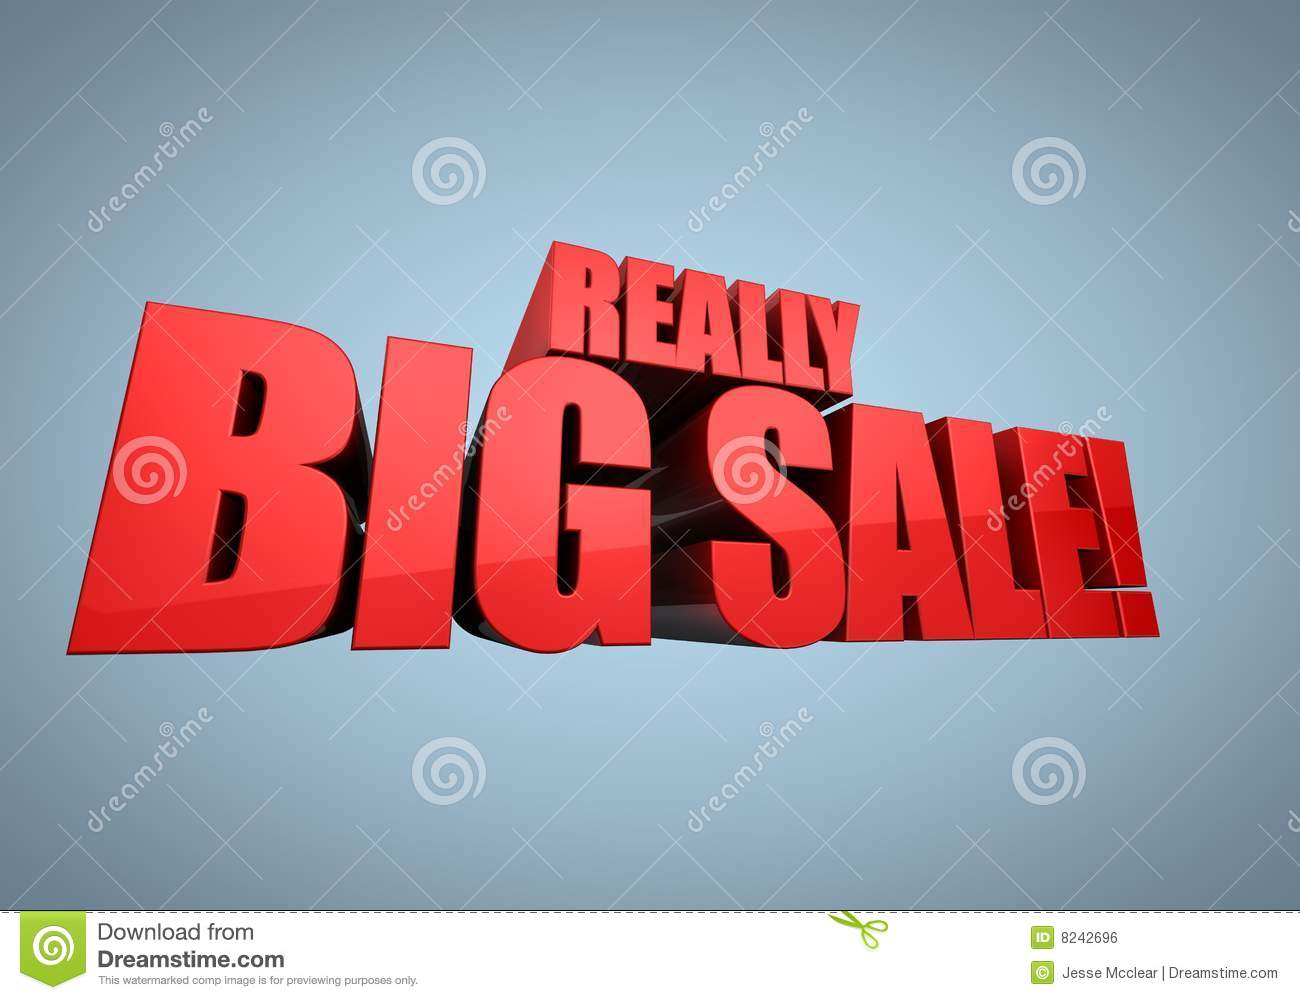 3D illustrated background with a banner for sale - 'Really Big Sale ...: www.dreamstime.com/royalty-free-stock-image-big-sale-banner...